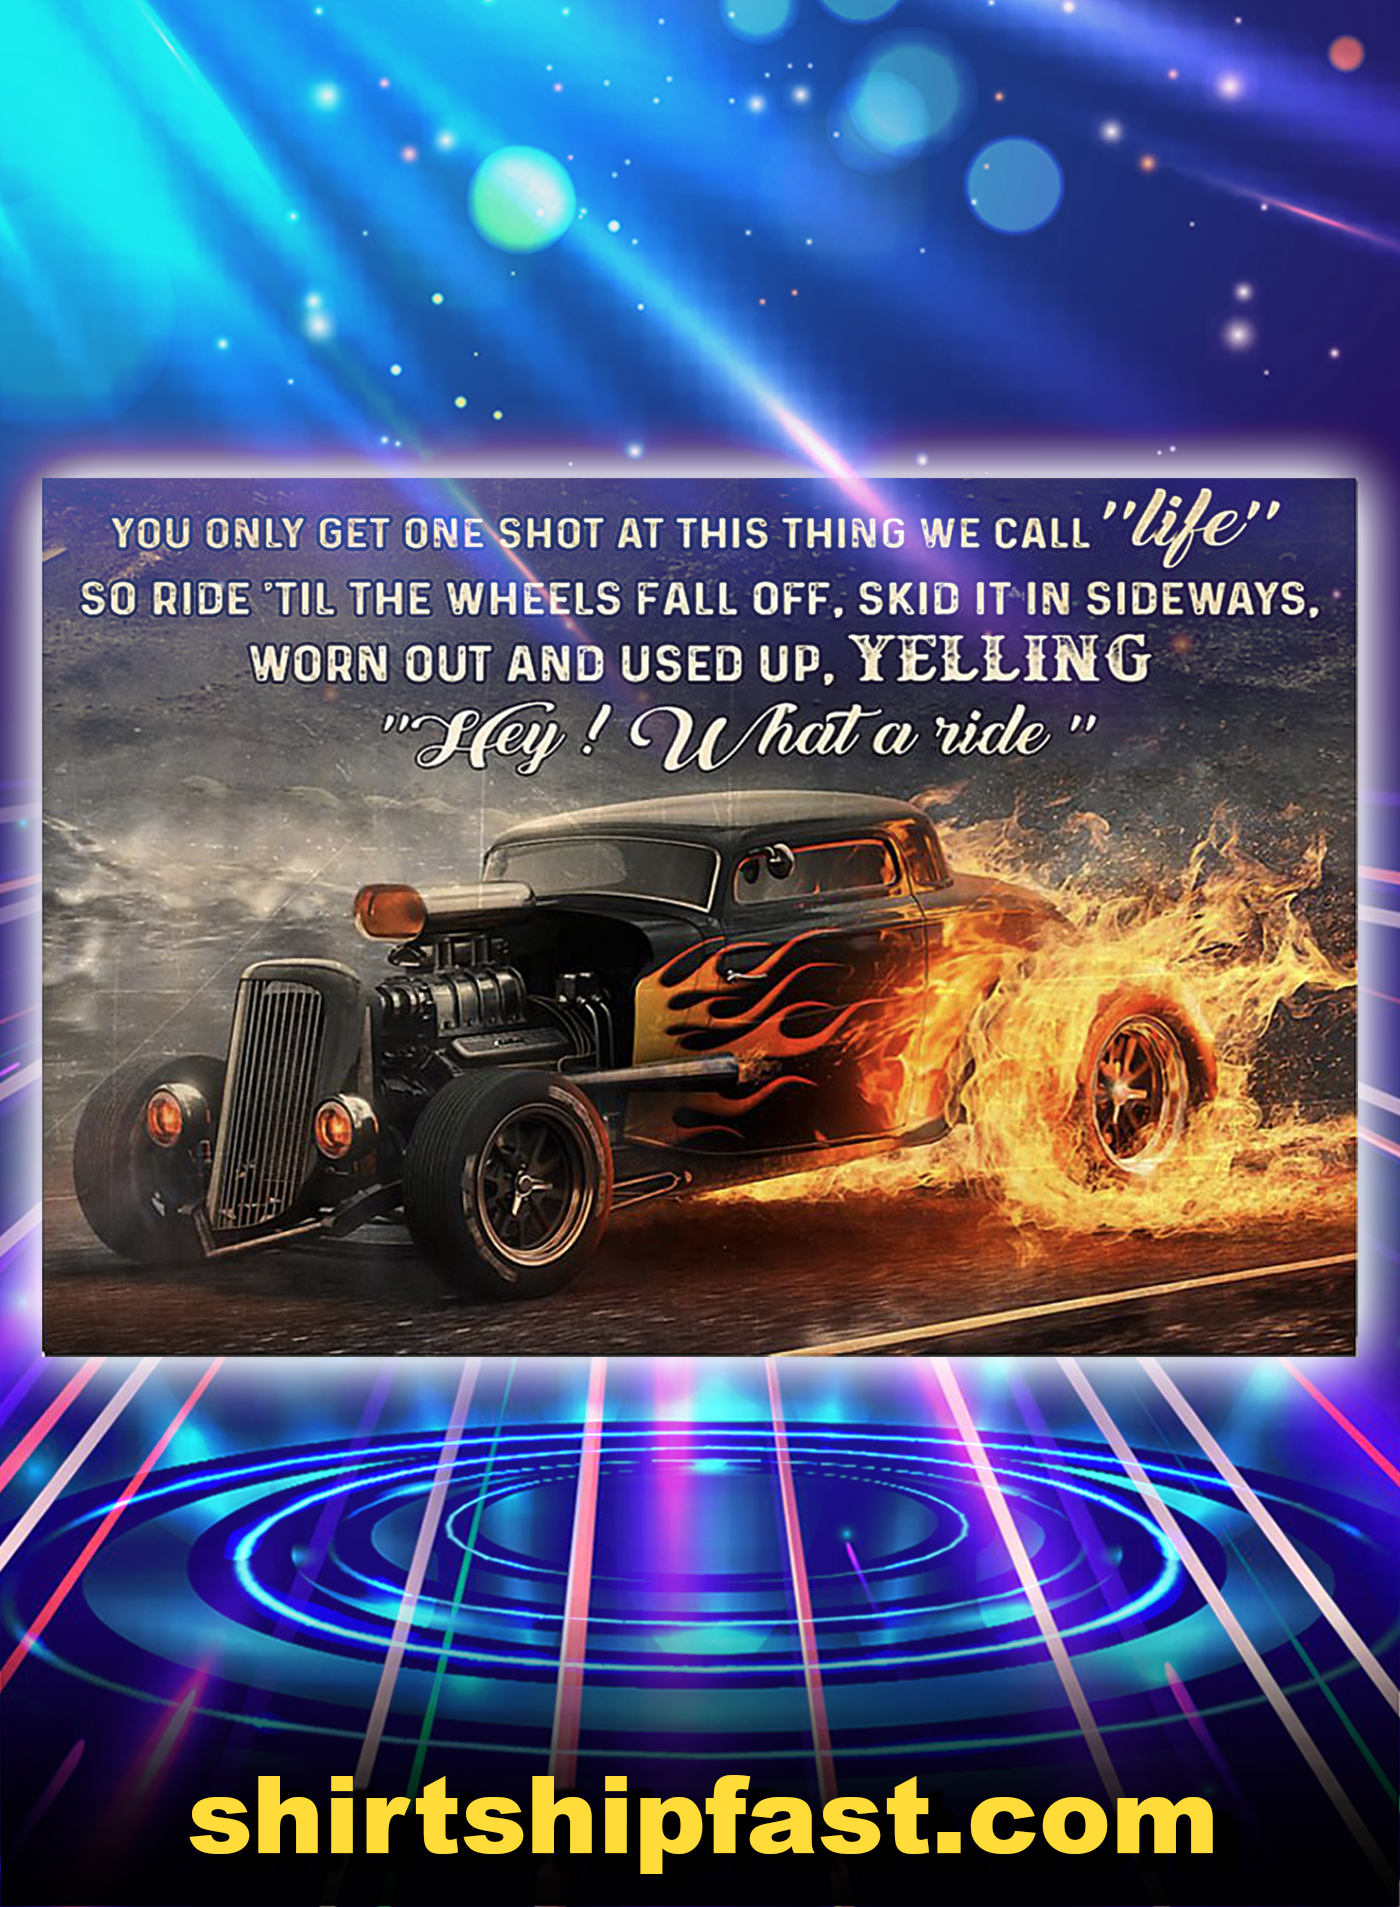 Hot rod what a ride poster - A1